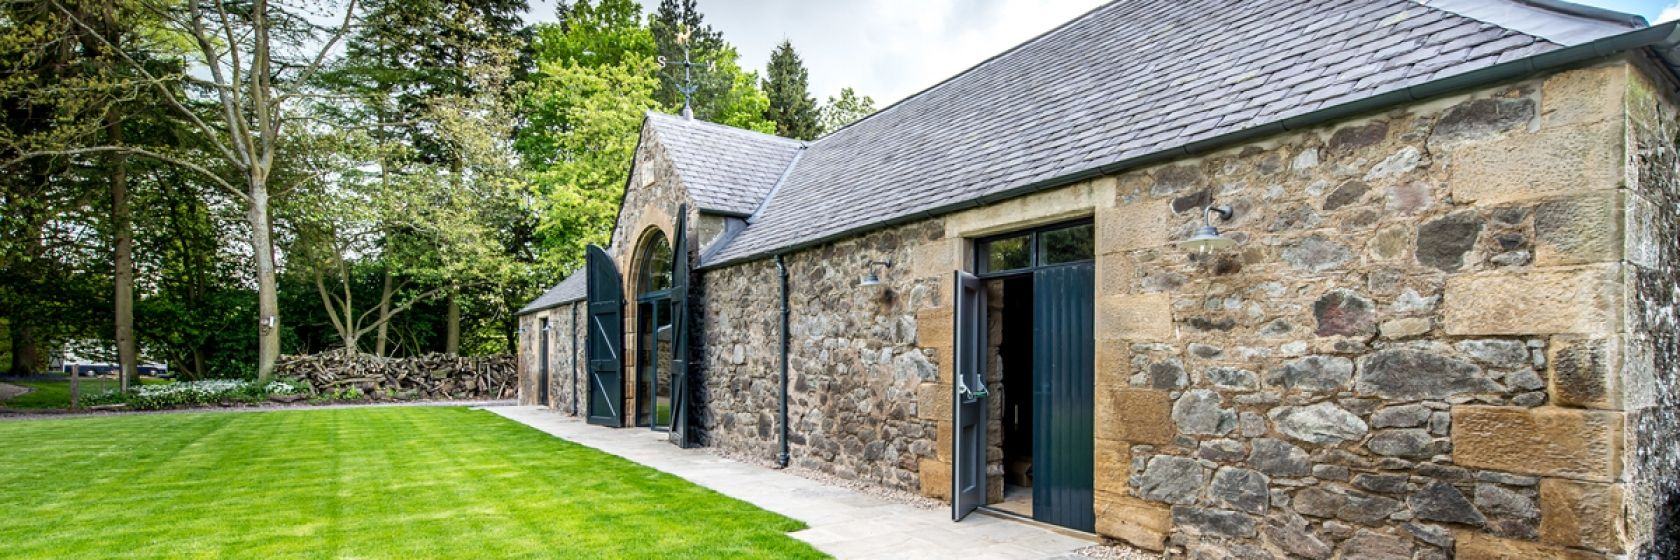 The Byre at Inchyra  Perthshire Scotland event  wedding barn  weddings barn scotland  visiting us